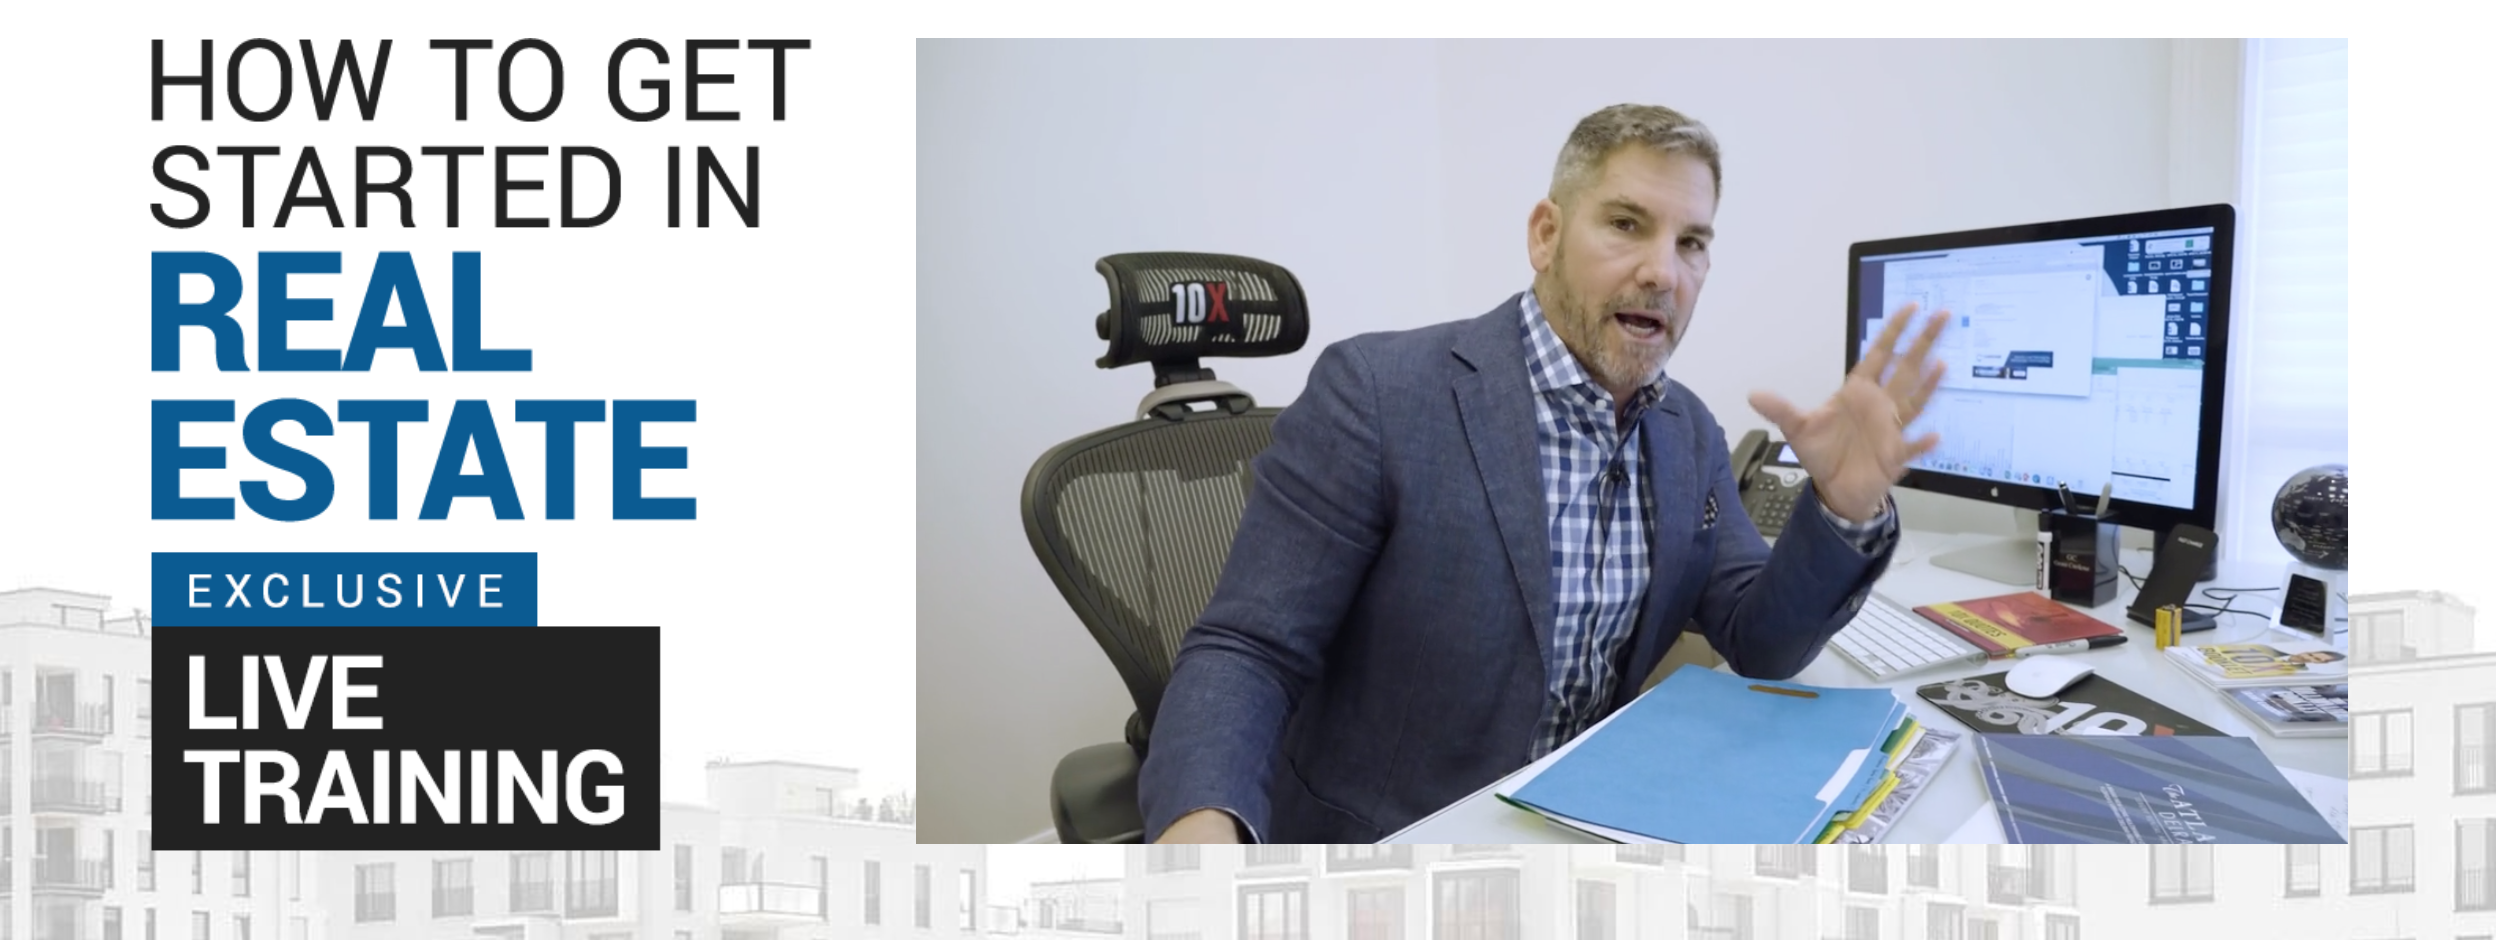 Grant Cardone Real Estate Webinar